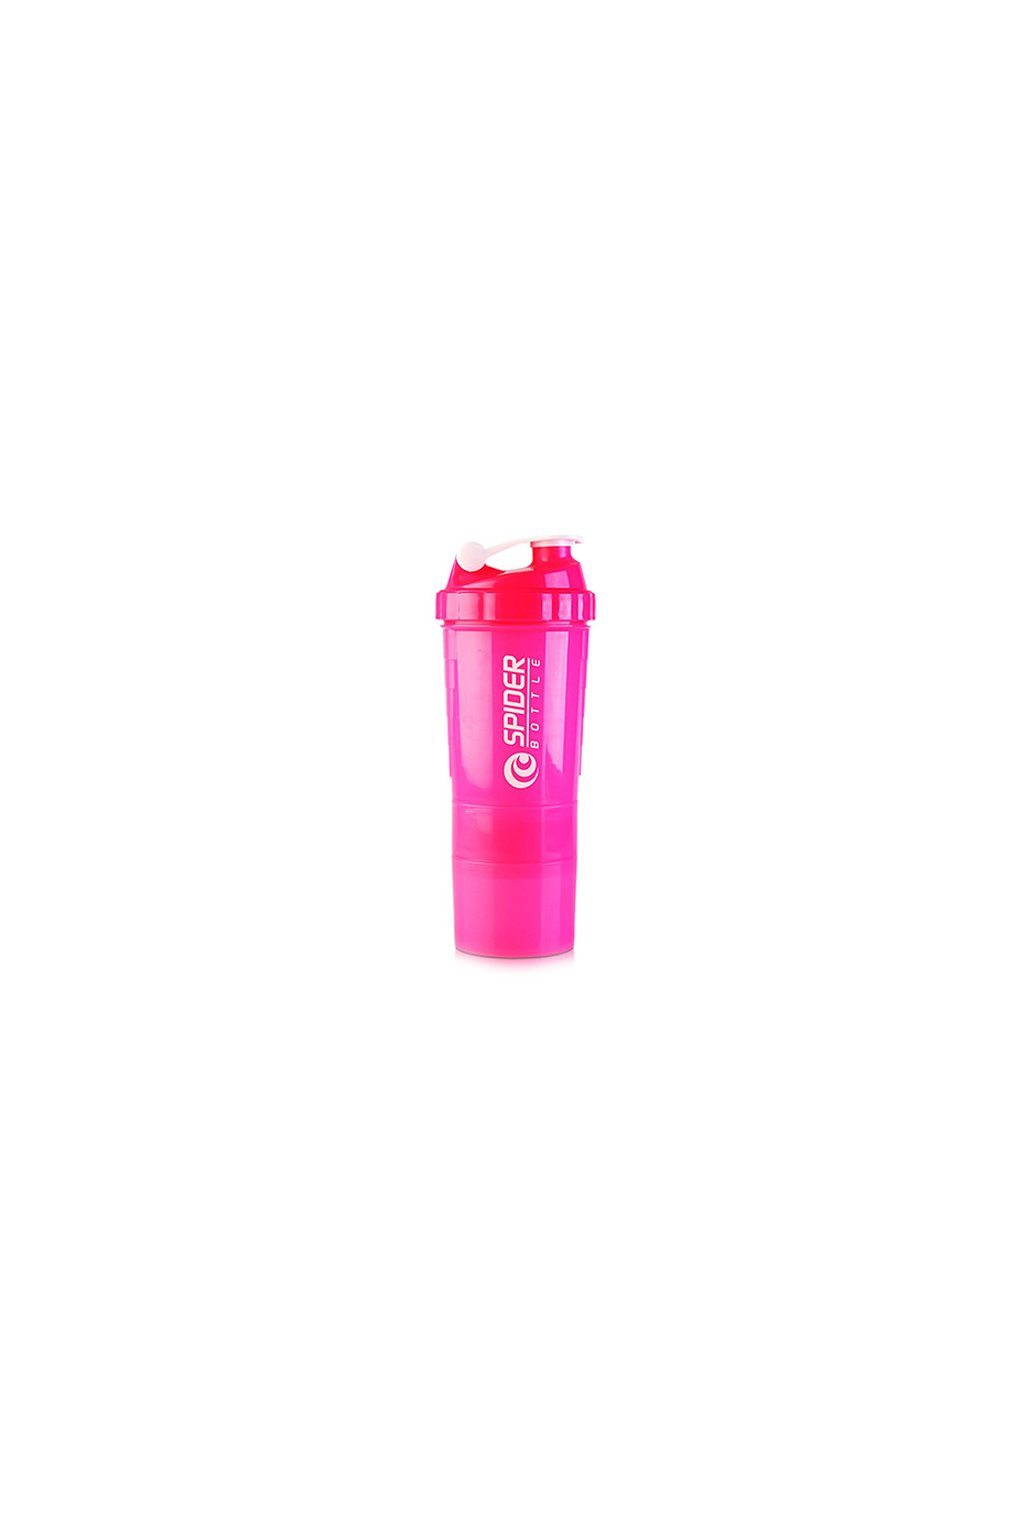 pol pl Spider Bottle Mini2Go 500ml 22800 1